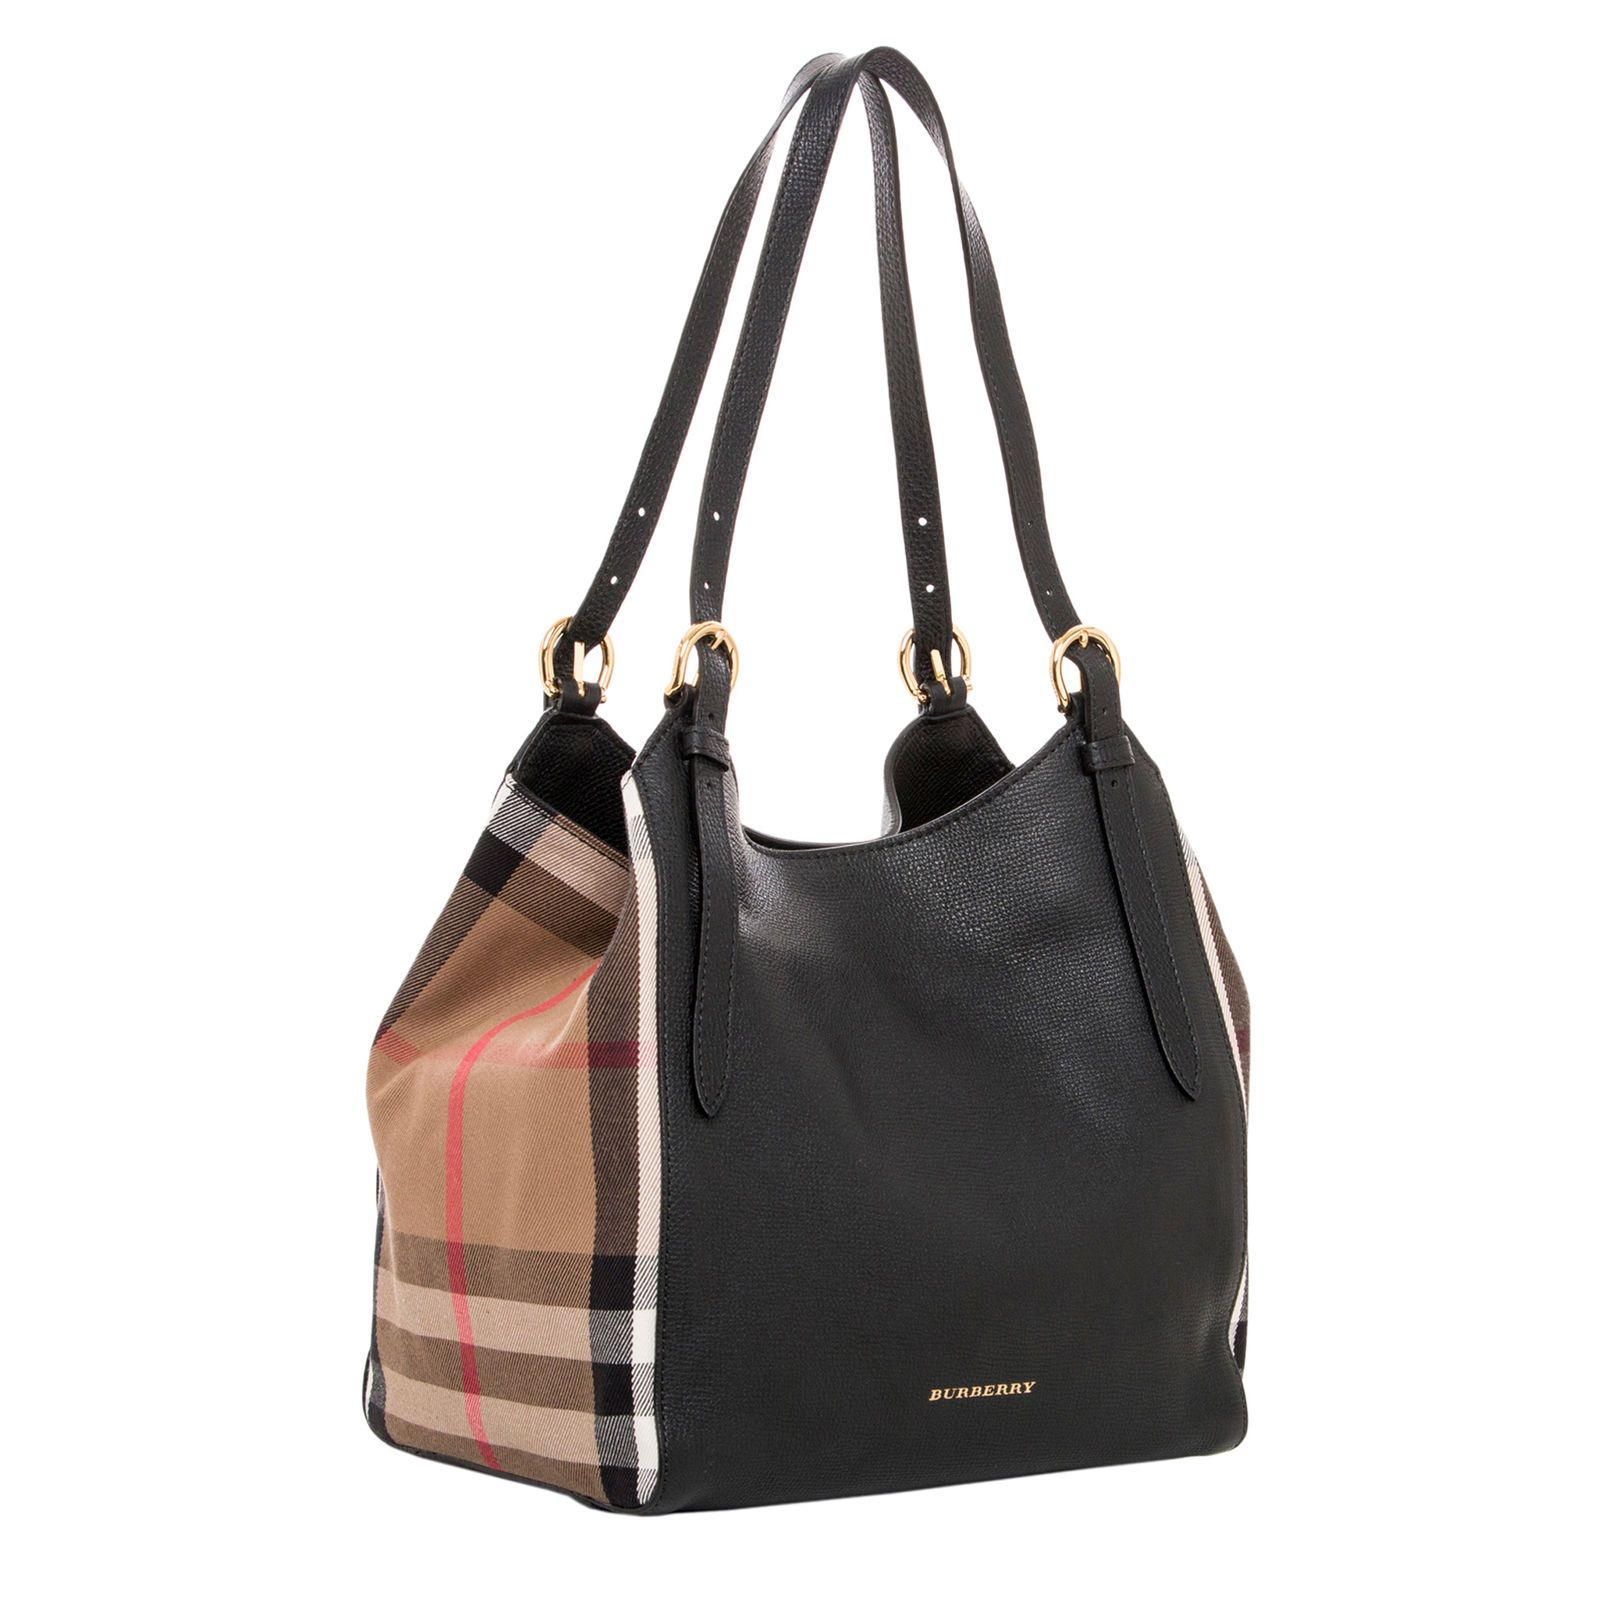 224b5bc73172 Burberry Women s Small Canter in and House Check Black Beige Burberry  Women